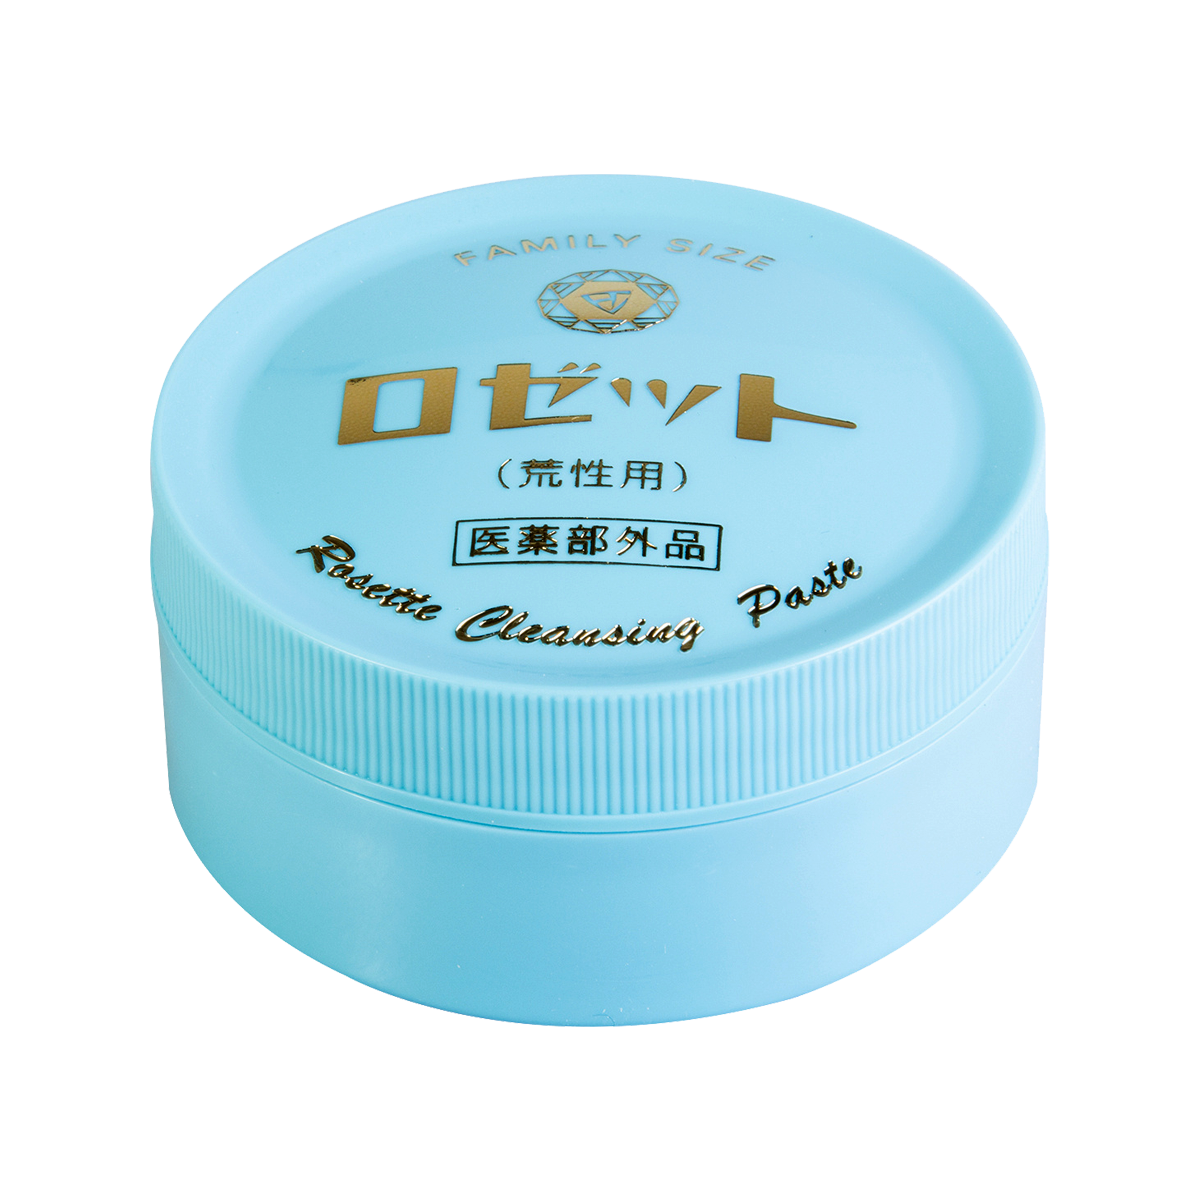 Yamibuy.com:Customer reviews:ROSETTE Cleansing Paste Face Wash For Dry Skin 90g